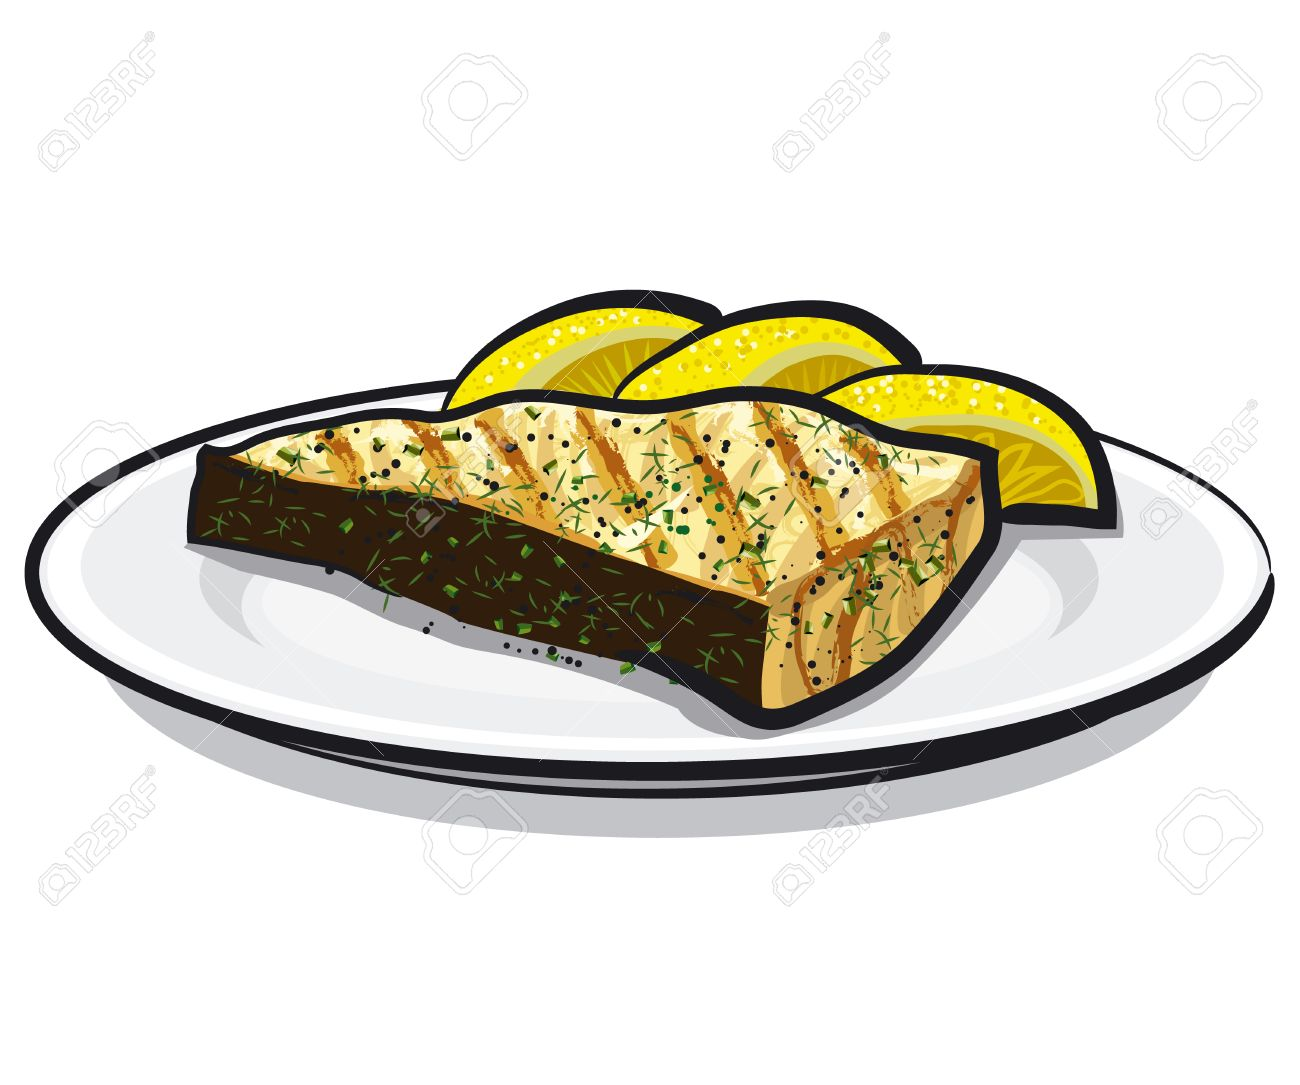 Baked Fish Royalty Free Cliparts, Vectors, And Stock Illustration ... for cooked salmon clipart  83fiz